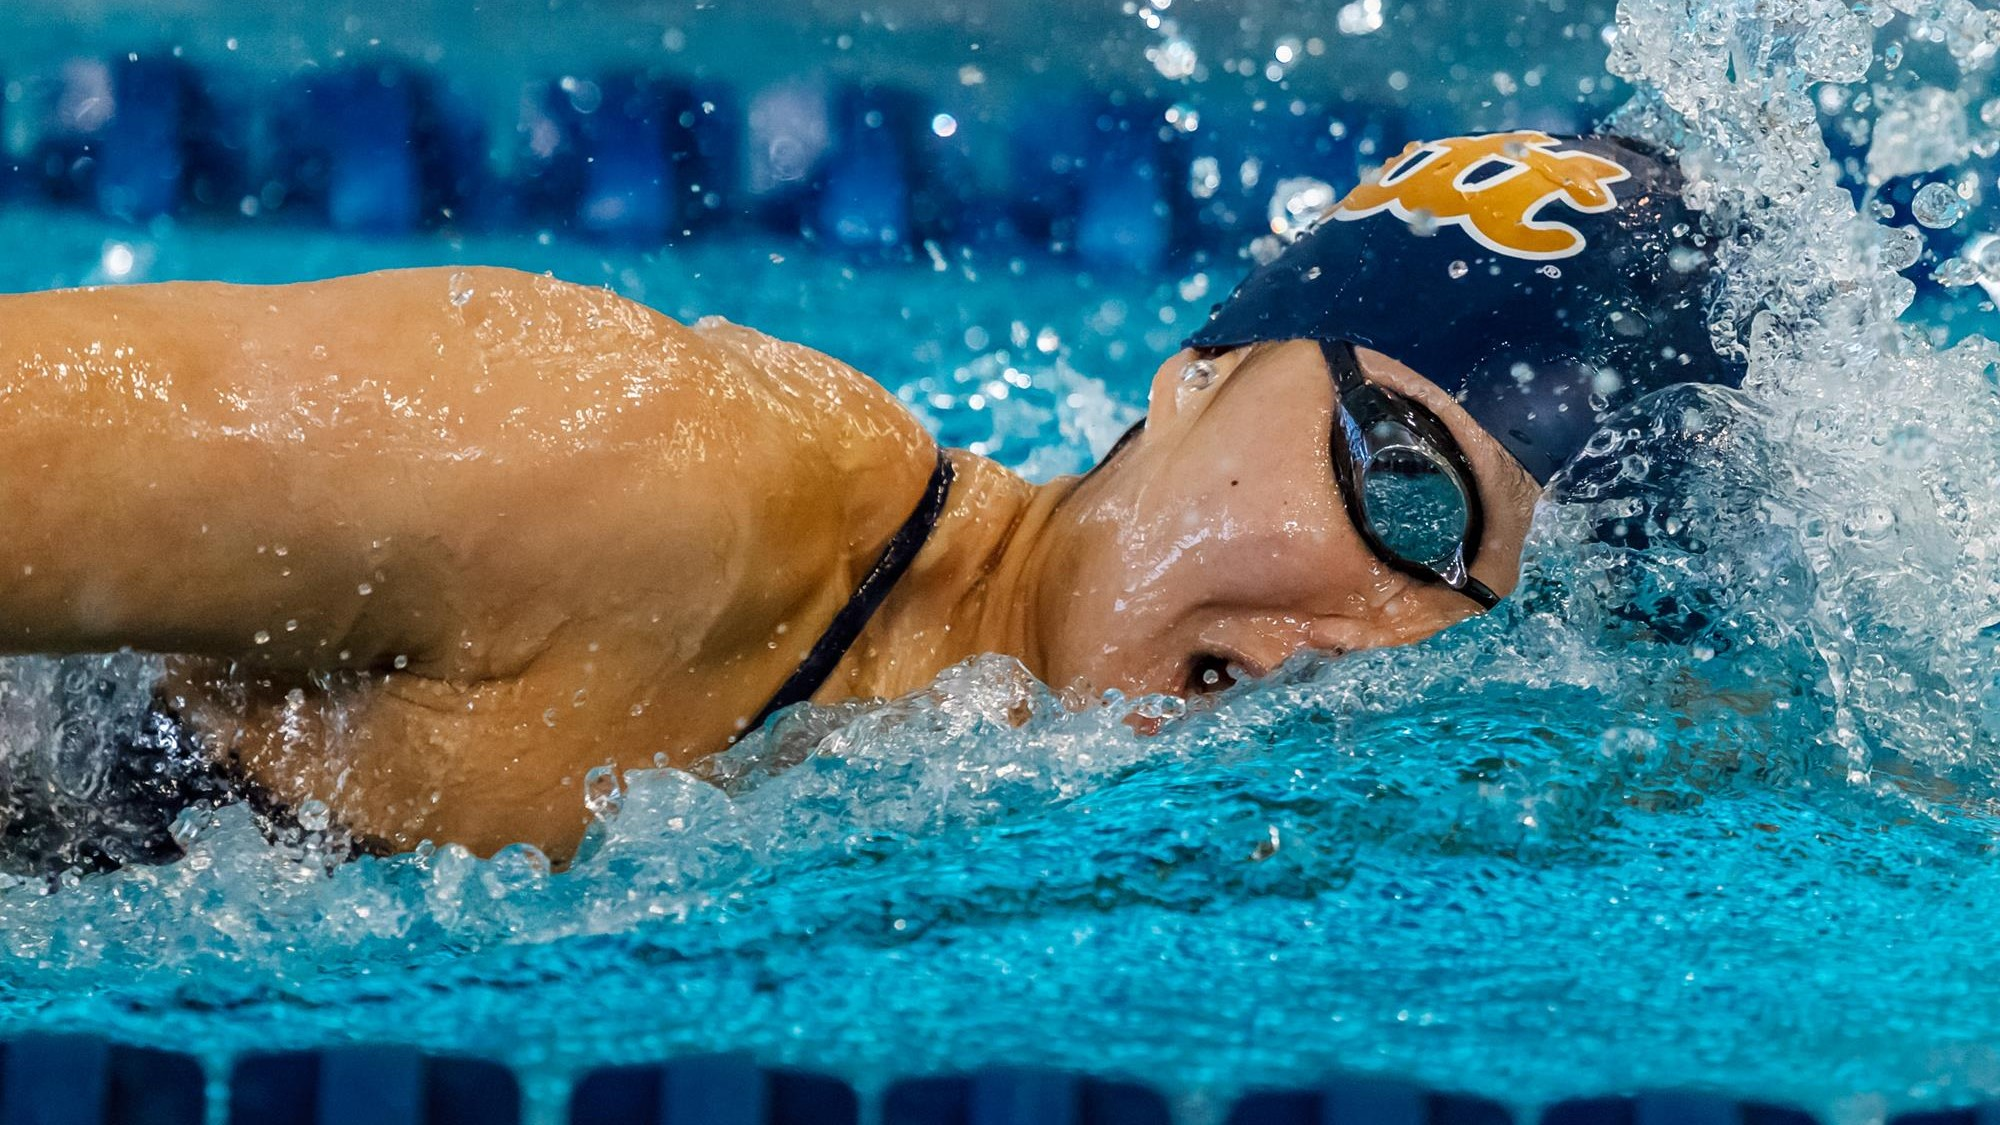 840aebe6cc Pitt to Honor Seniors, Host Western Pennsylvania Invitational - Pitt  Panthers #H2P